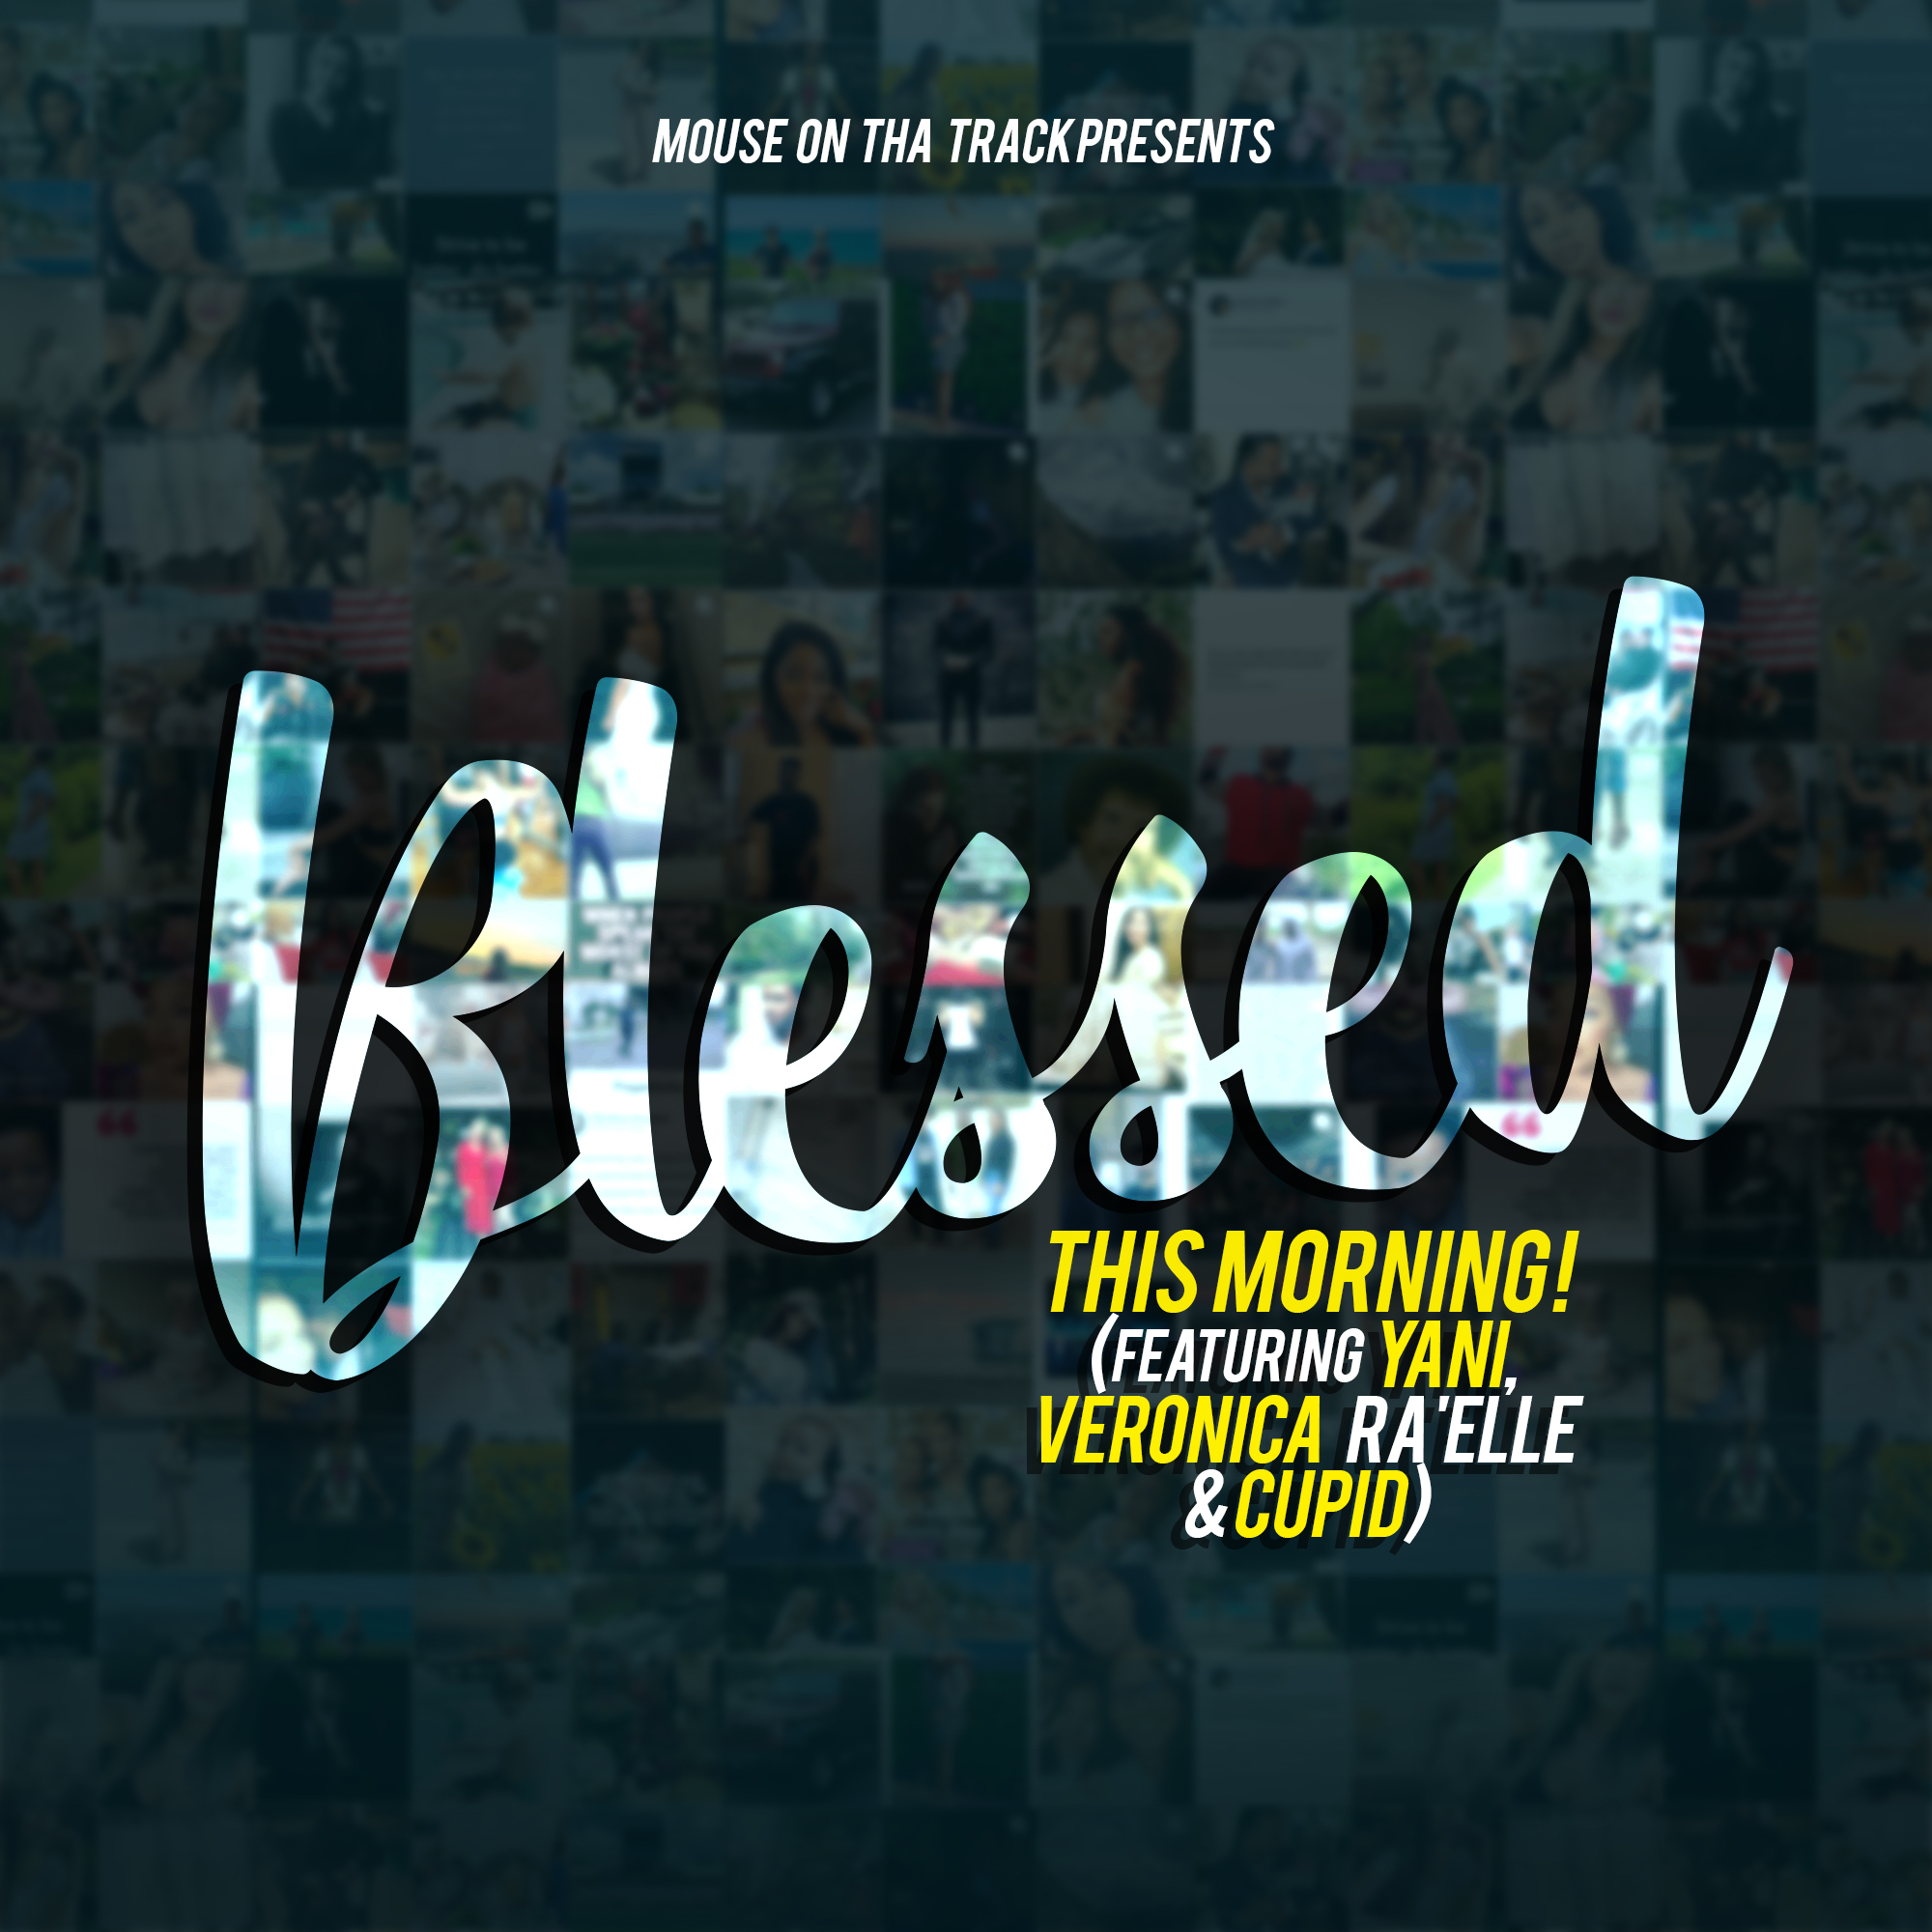 Art for BLESSED THIS MORNING (Feat. Yani, Veronica Ra'elle & Cupid) by Mouse On tha Track